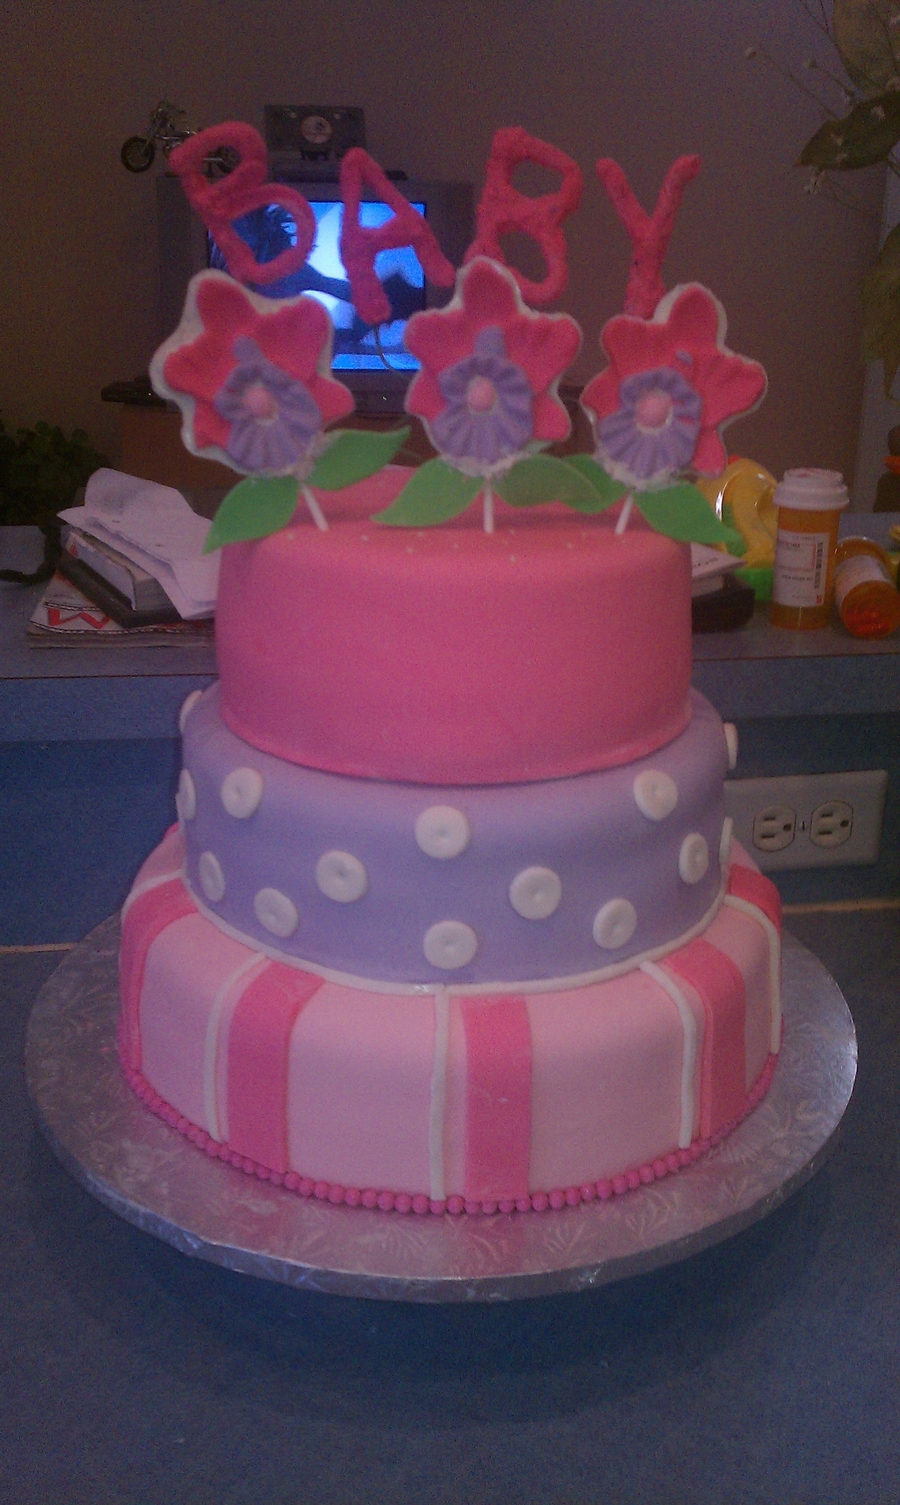 Baby Girl Baby Shower on Cake Central